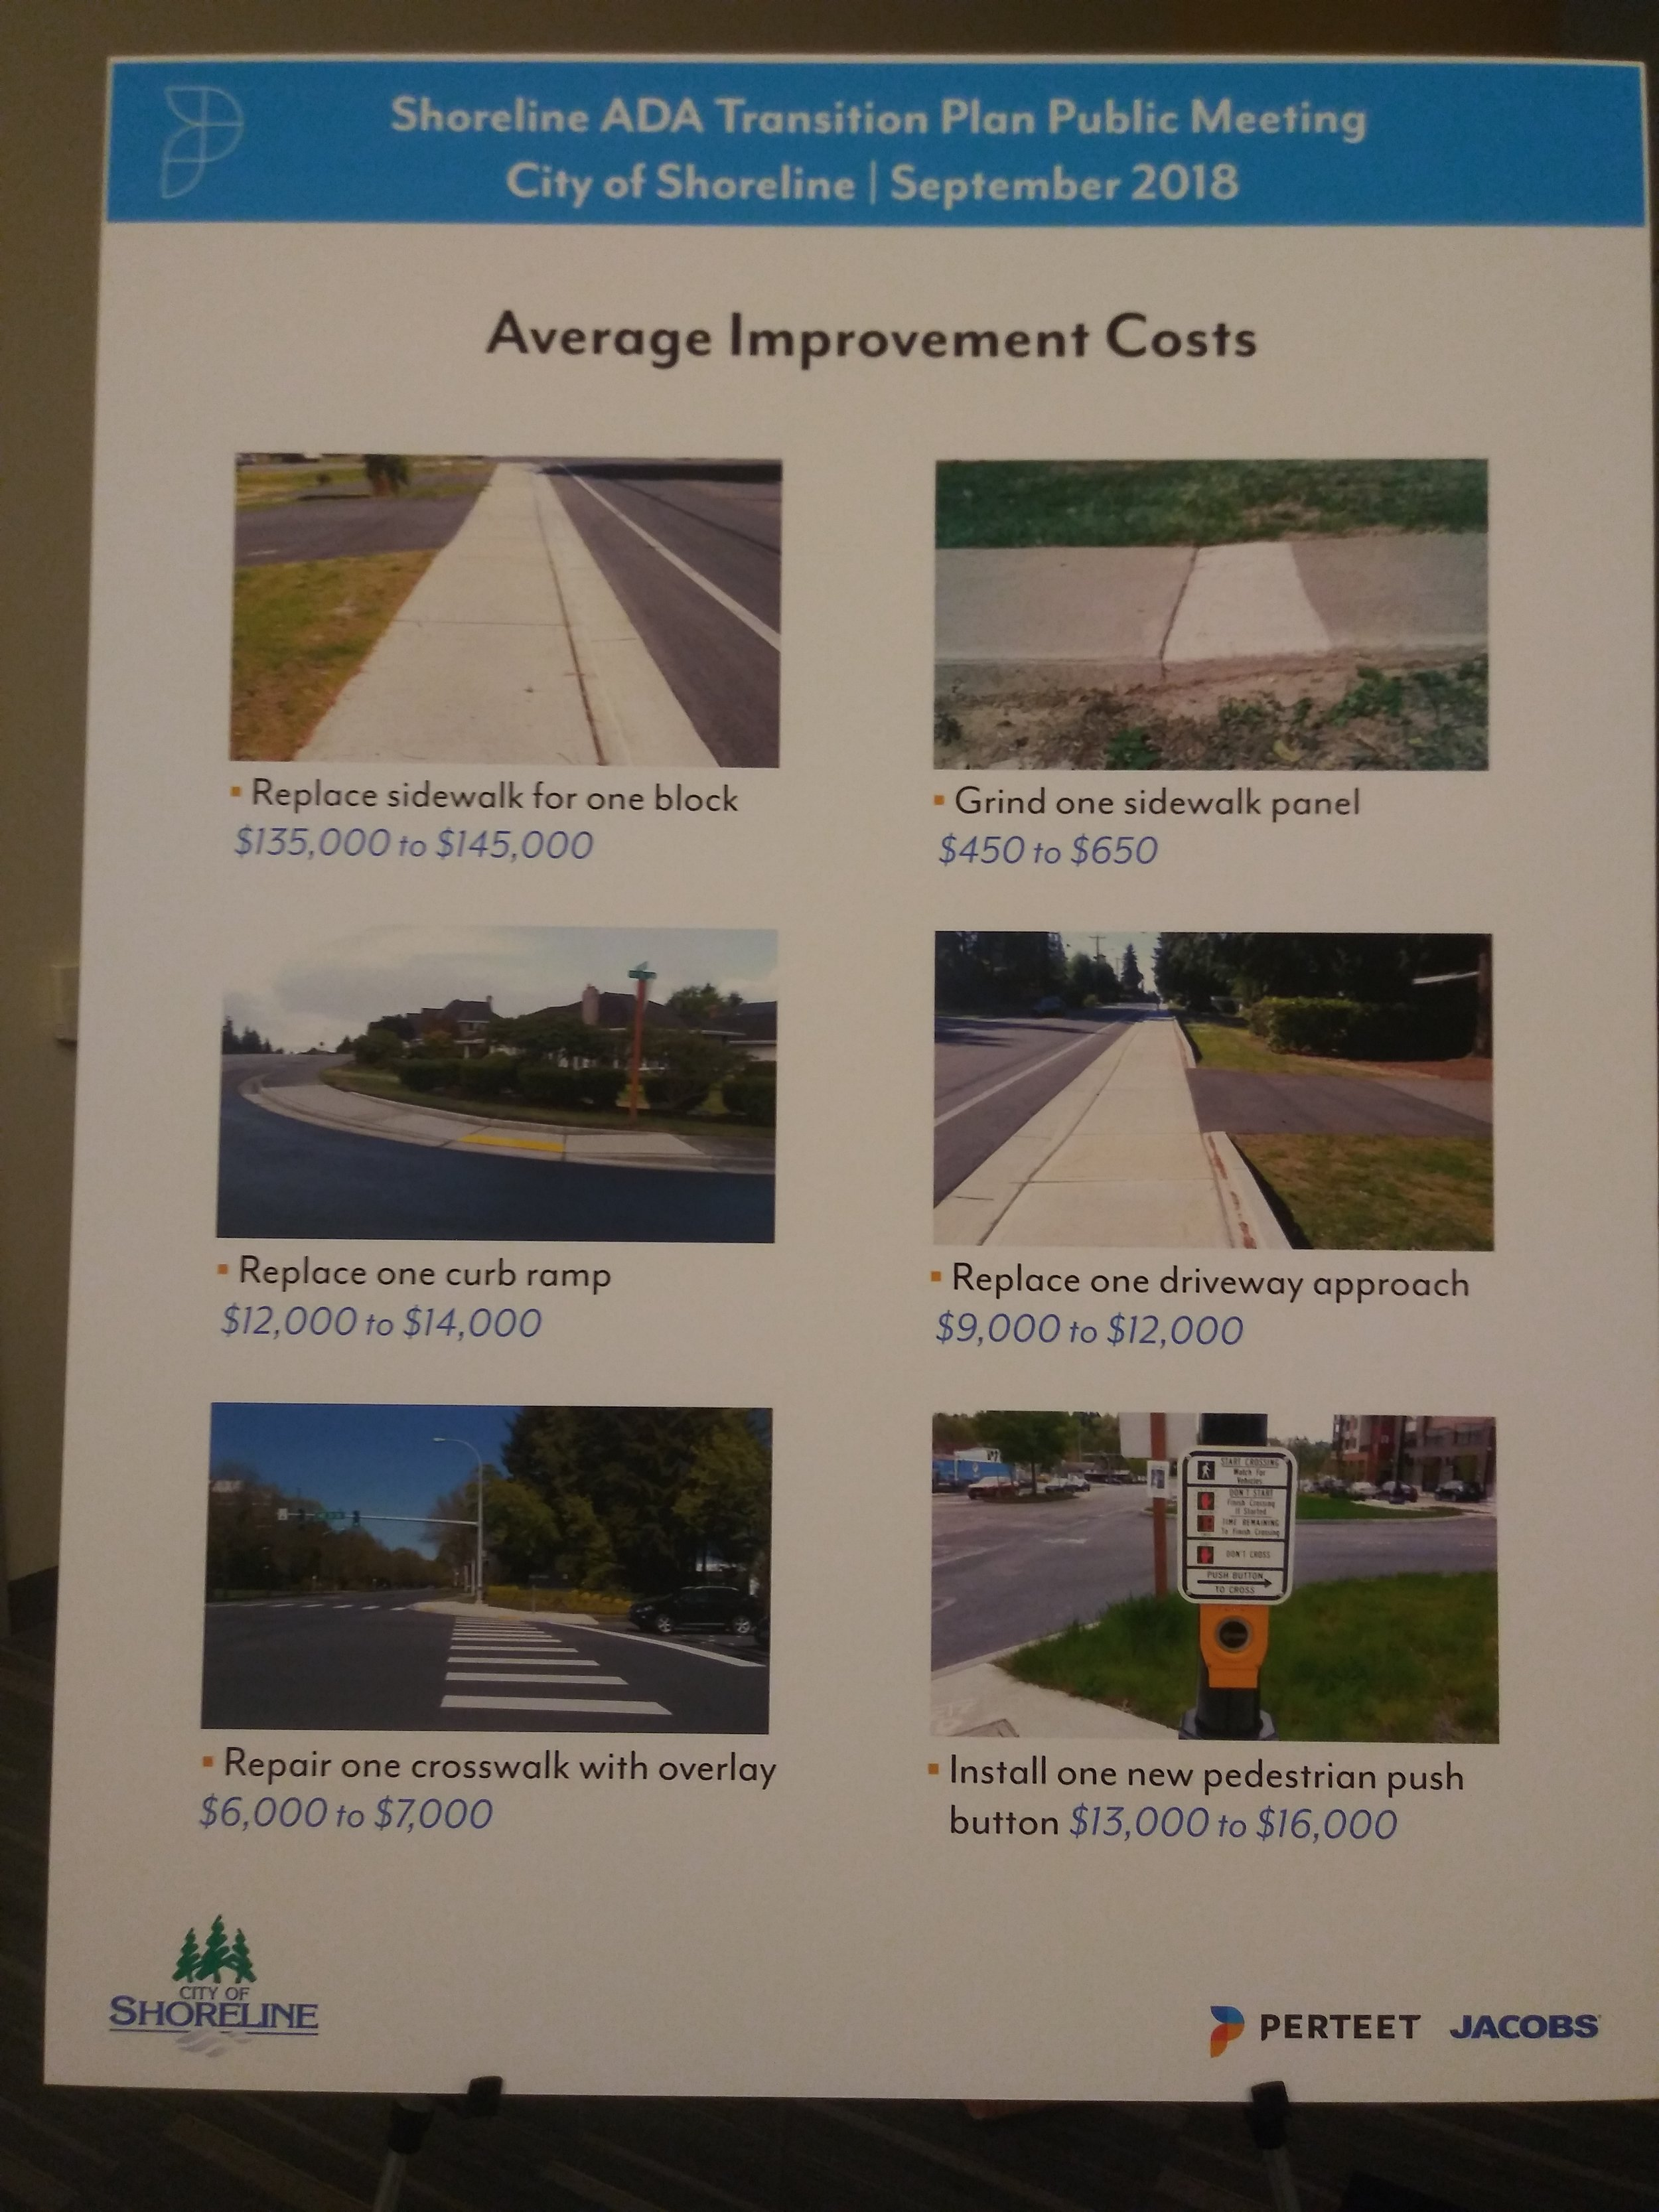 From Shoreline's Sidewalk ADA Plan open house: the costs of various sidewalk replacement and repair projects. Prop 1 could have funded $60,000,000 / $145,000/block = 400 blocks of sidewalk replacement and roughly 4000 blocks of spot repairs.